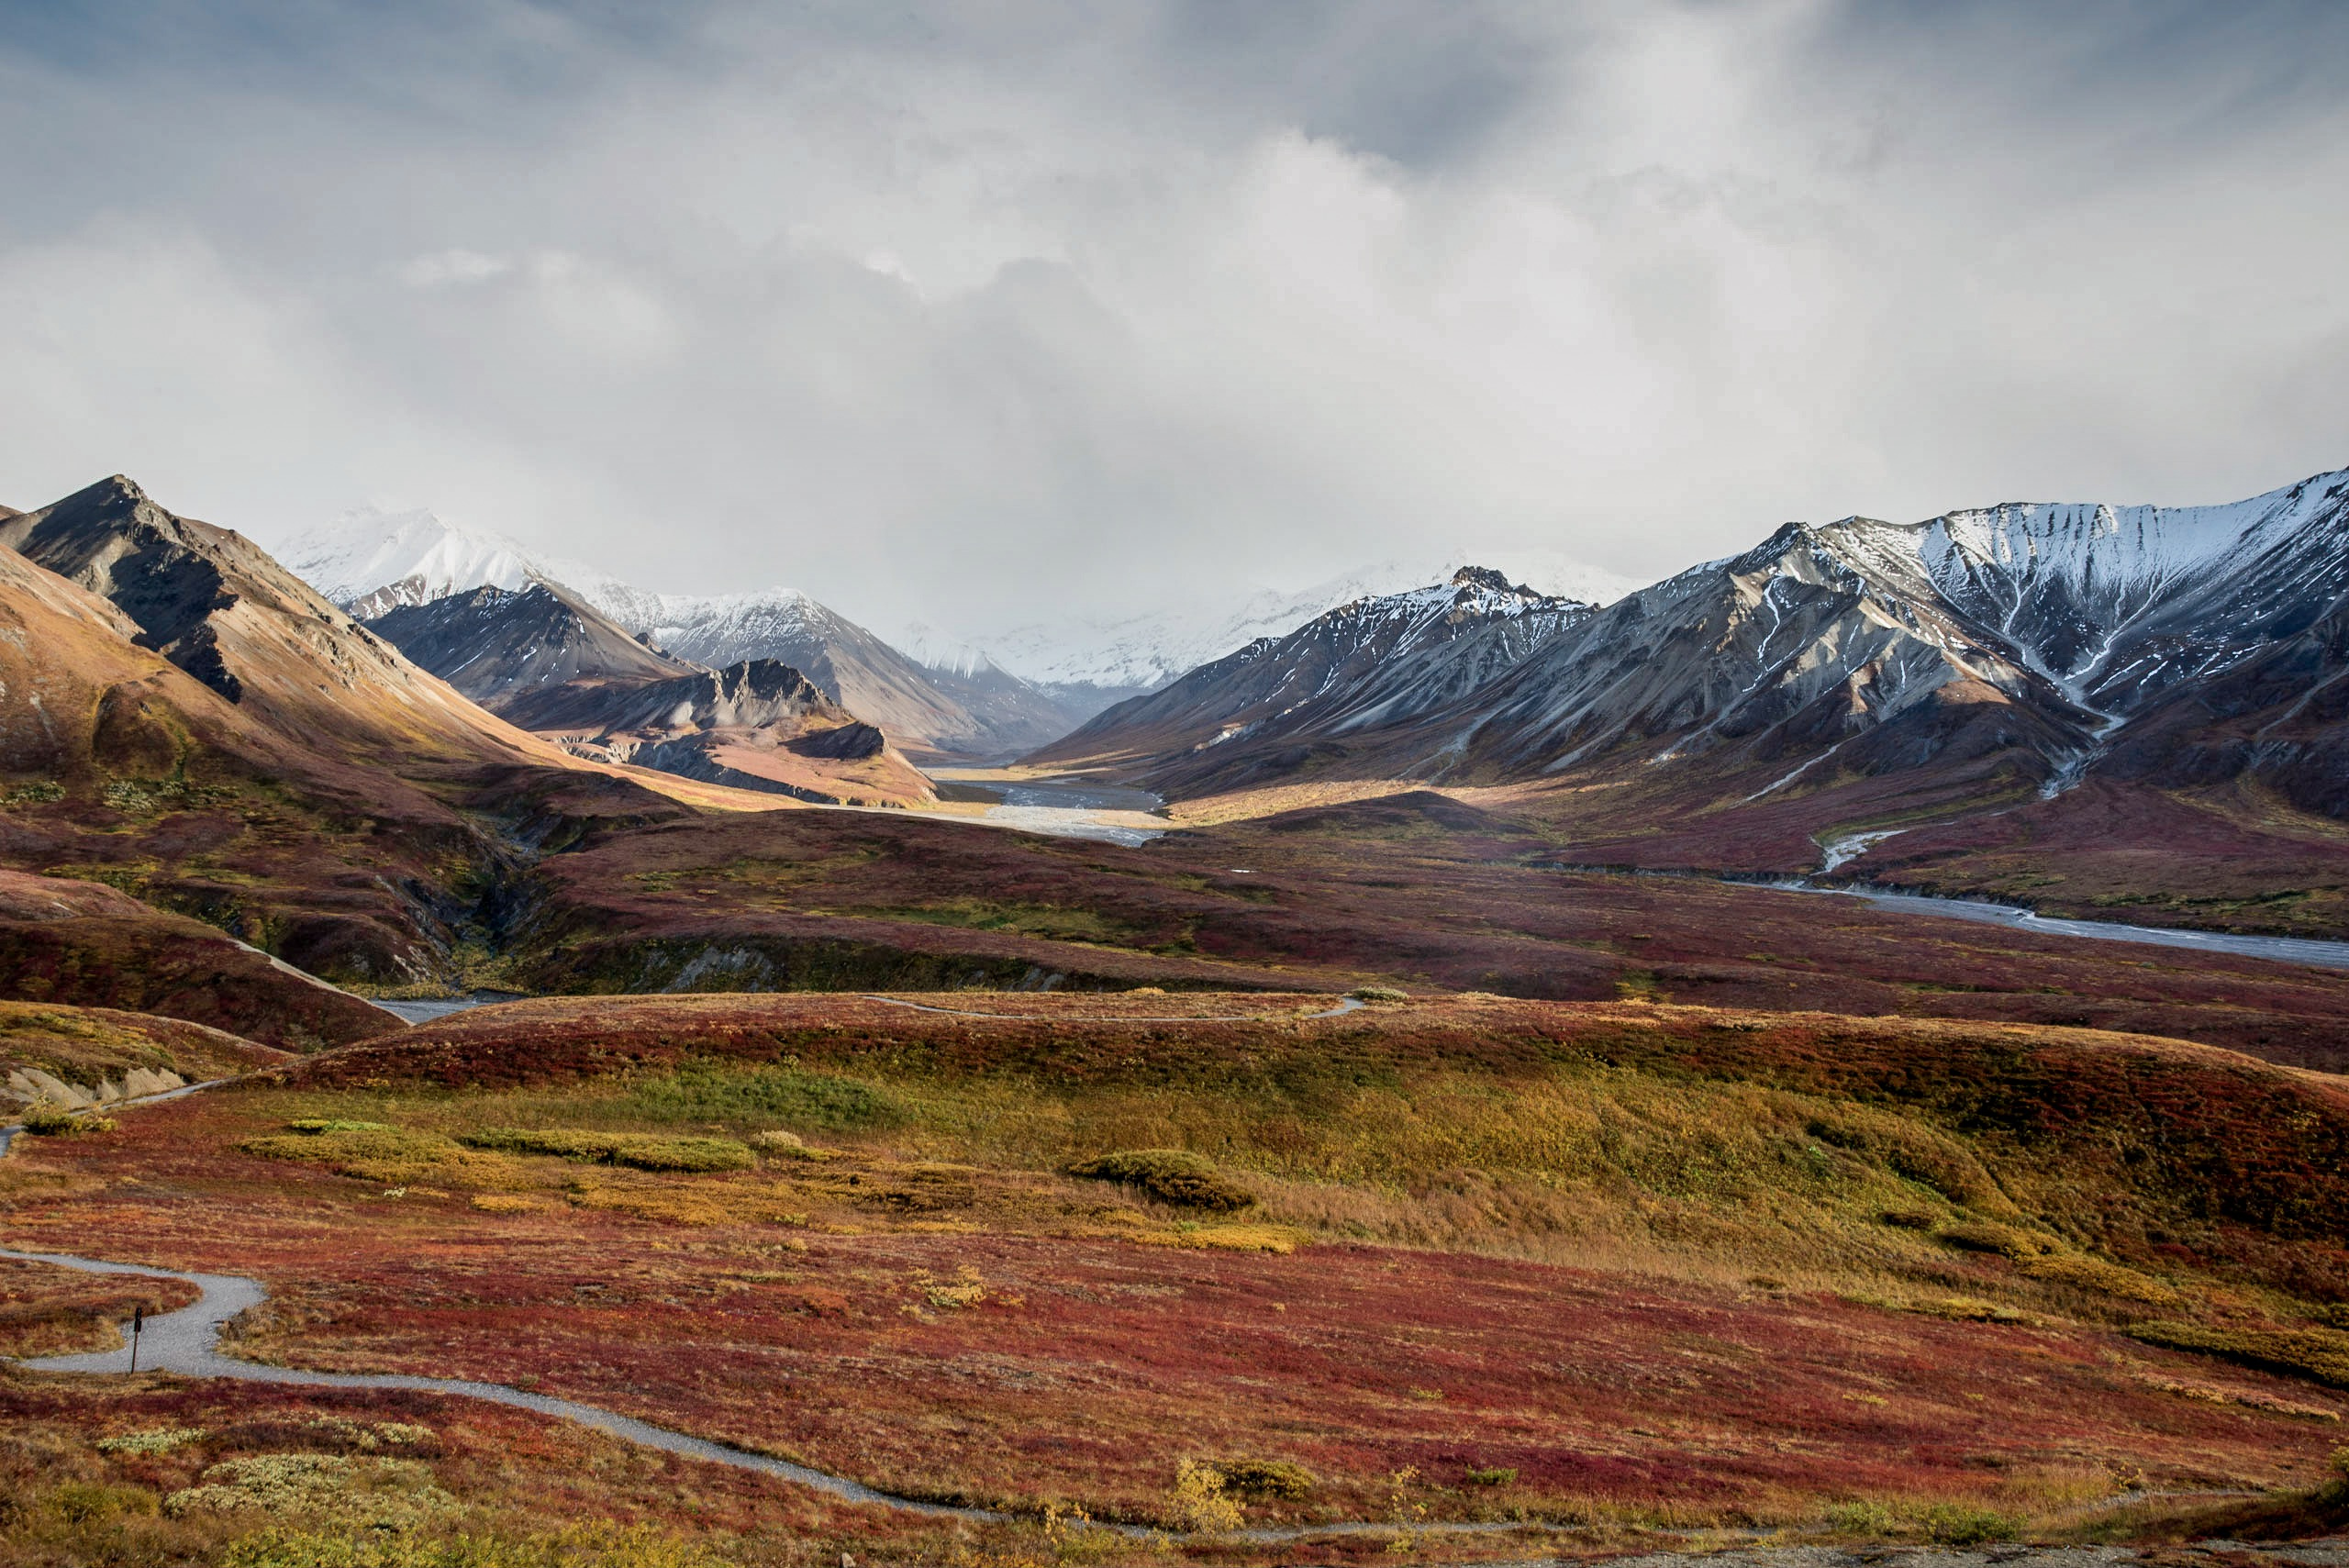 What Do I Need to Travel to the Tundra Biome? | USA Today